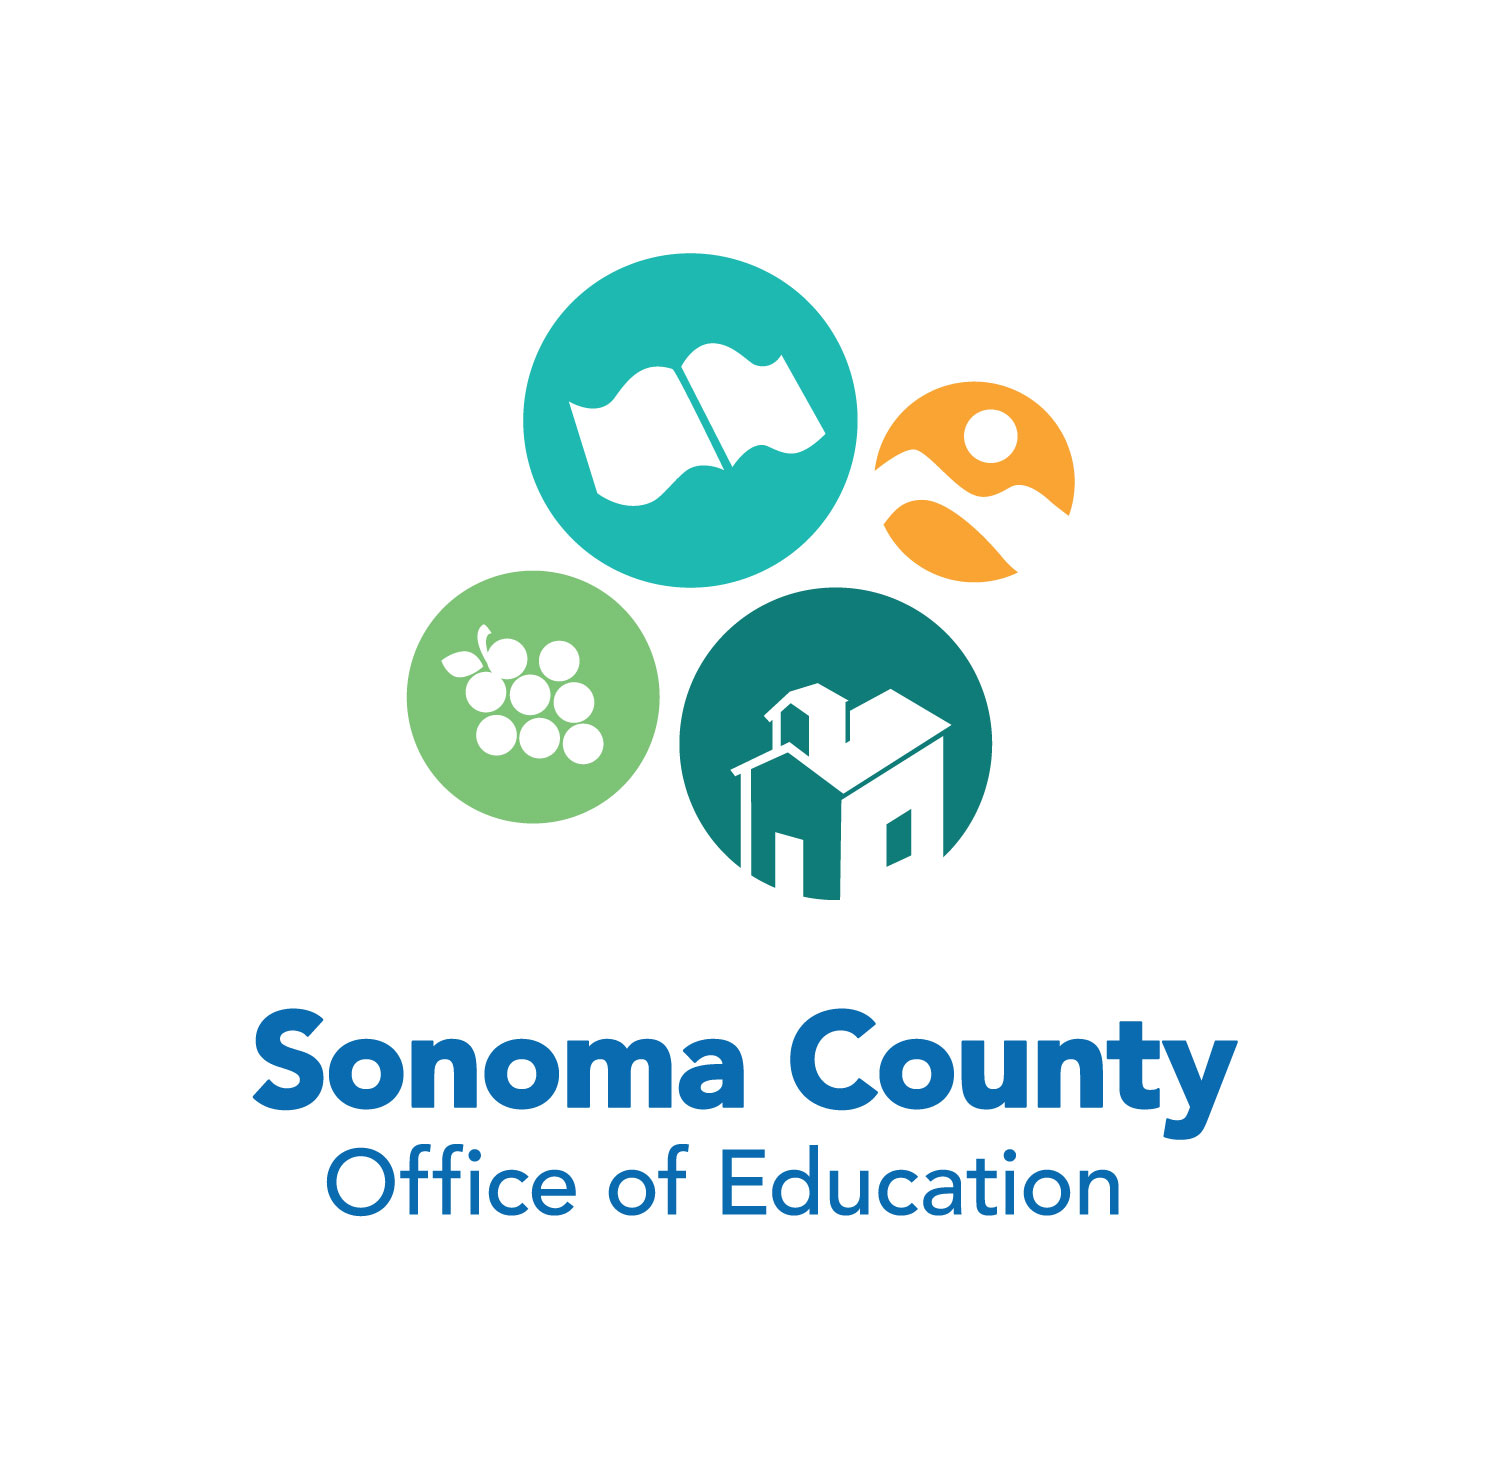 Sonoma Office of Education